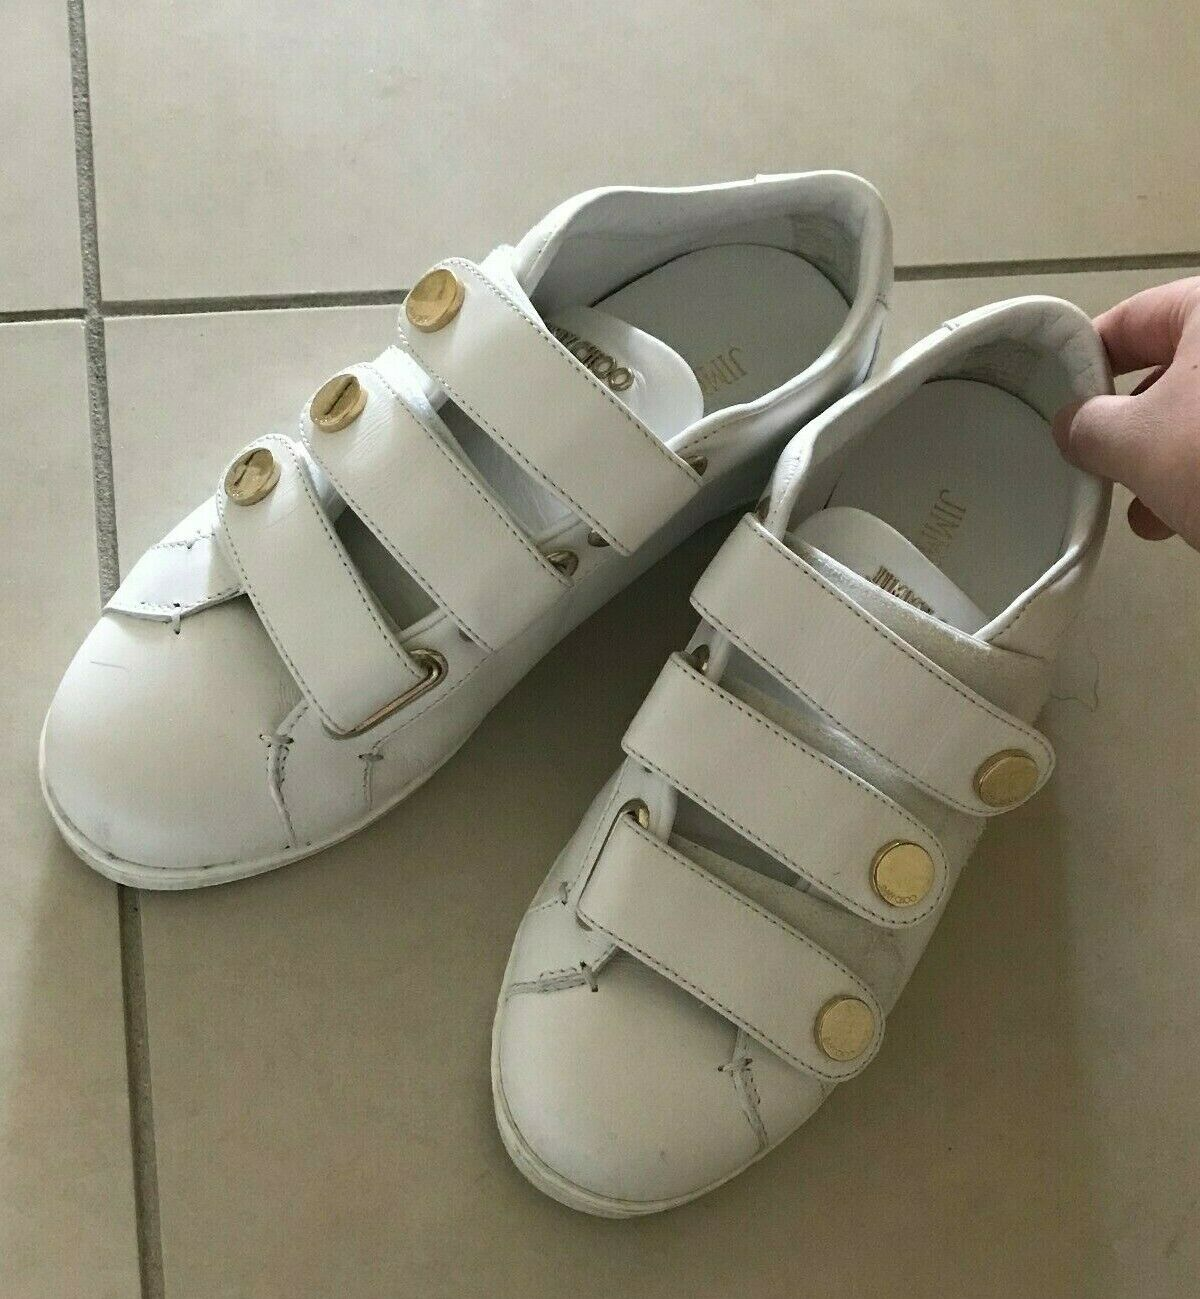 Jimmy Choo CUTE sneaker shoes white, US7 37, wore lease than 5 times, basic new